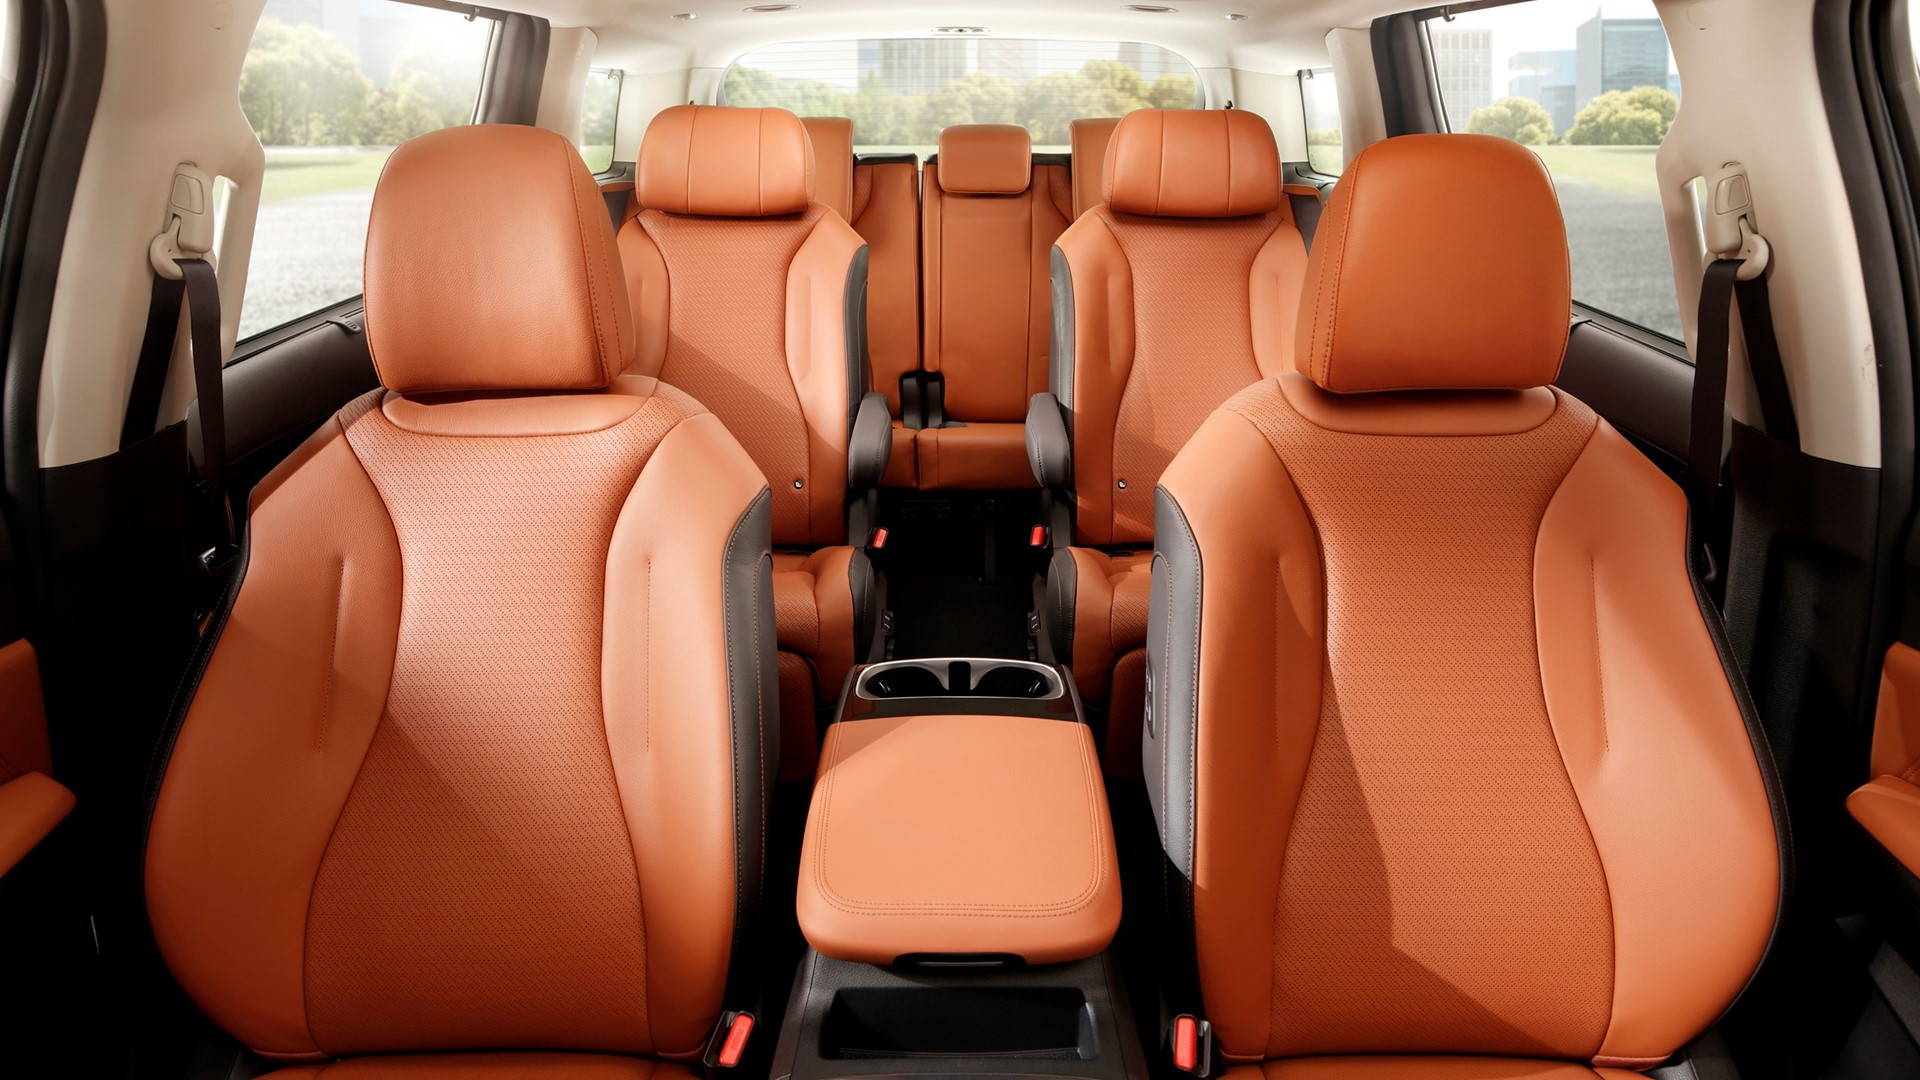 Kia introduces all-new Carnival, offering unrivalled style, space and comfort - Image 2